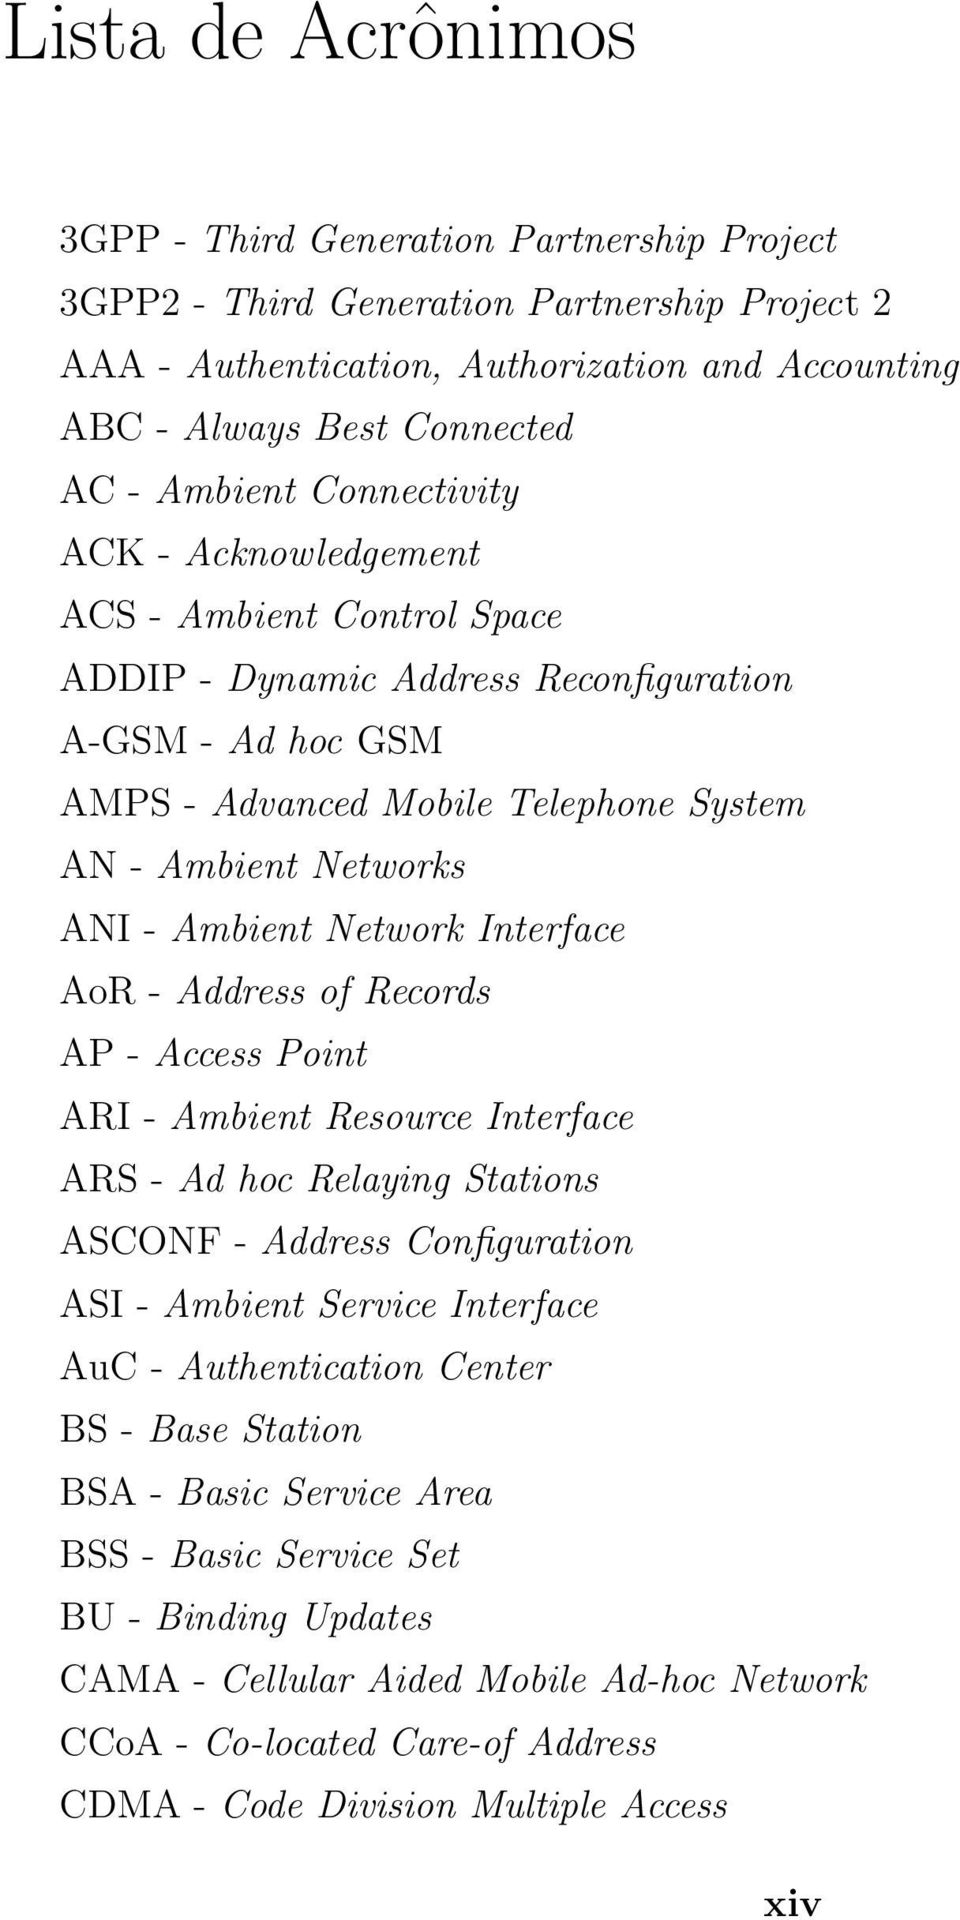 Ambient Network Interface AoR - Address of Records AP - Access Point ARI - Ambient Resource Interface ARS - Ad hoc Relaying Stations ASCONF - Address Configuration ASI - Ambient Service Interface AuC